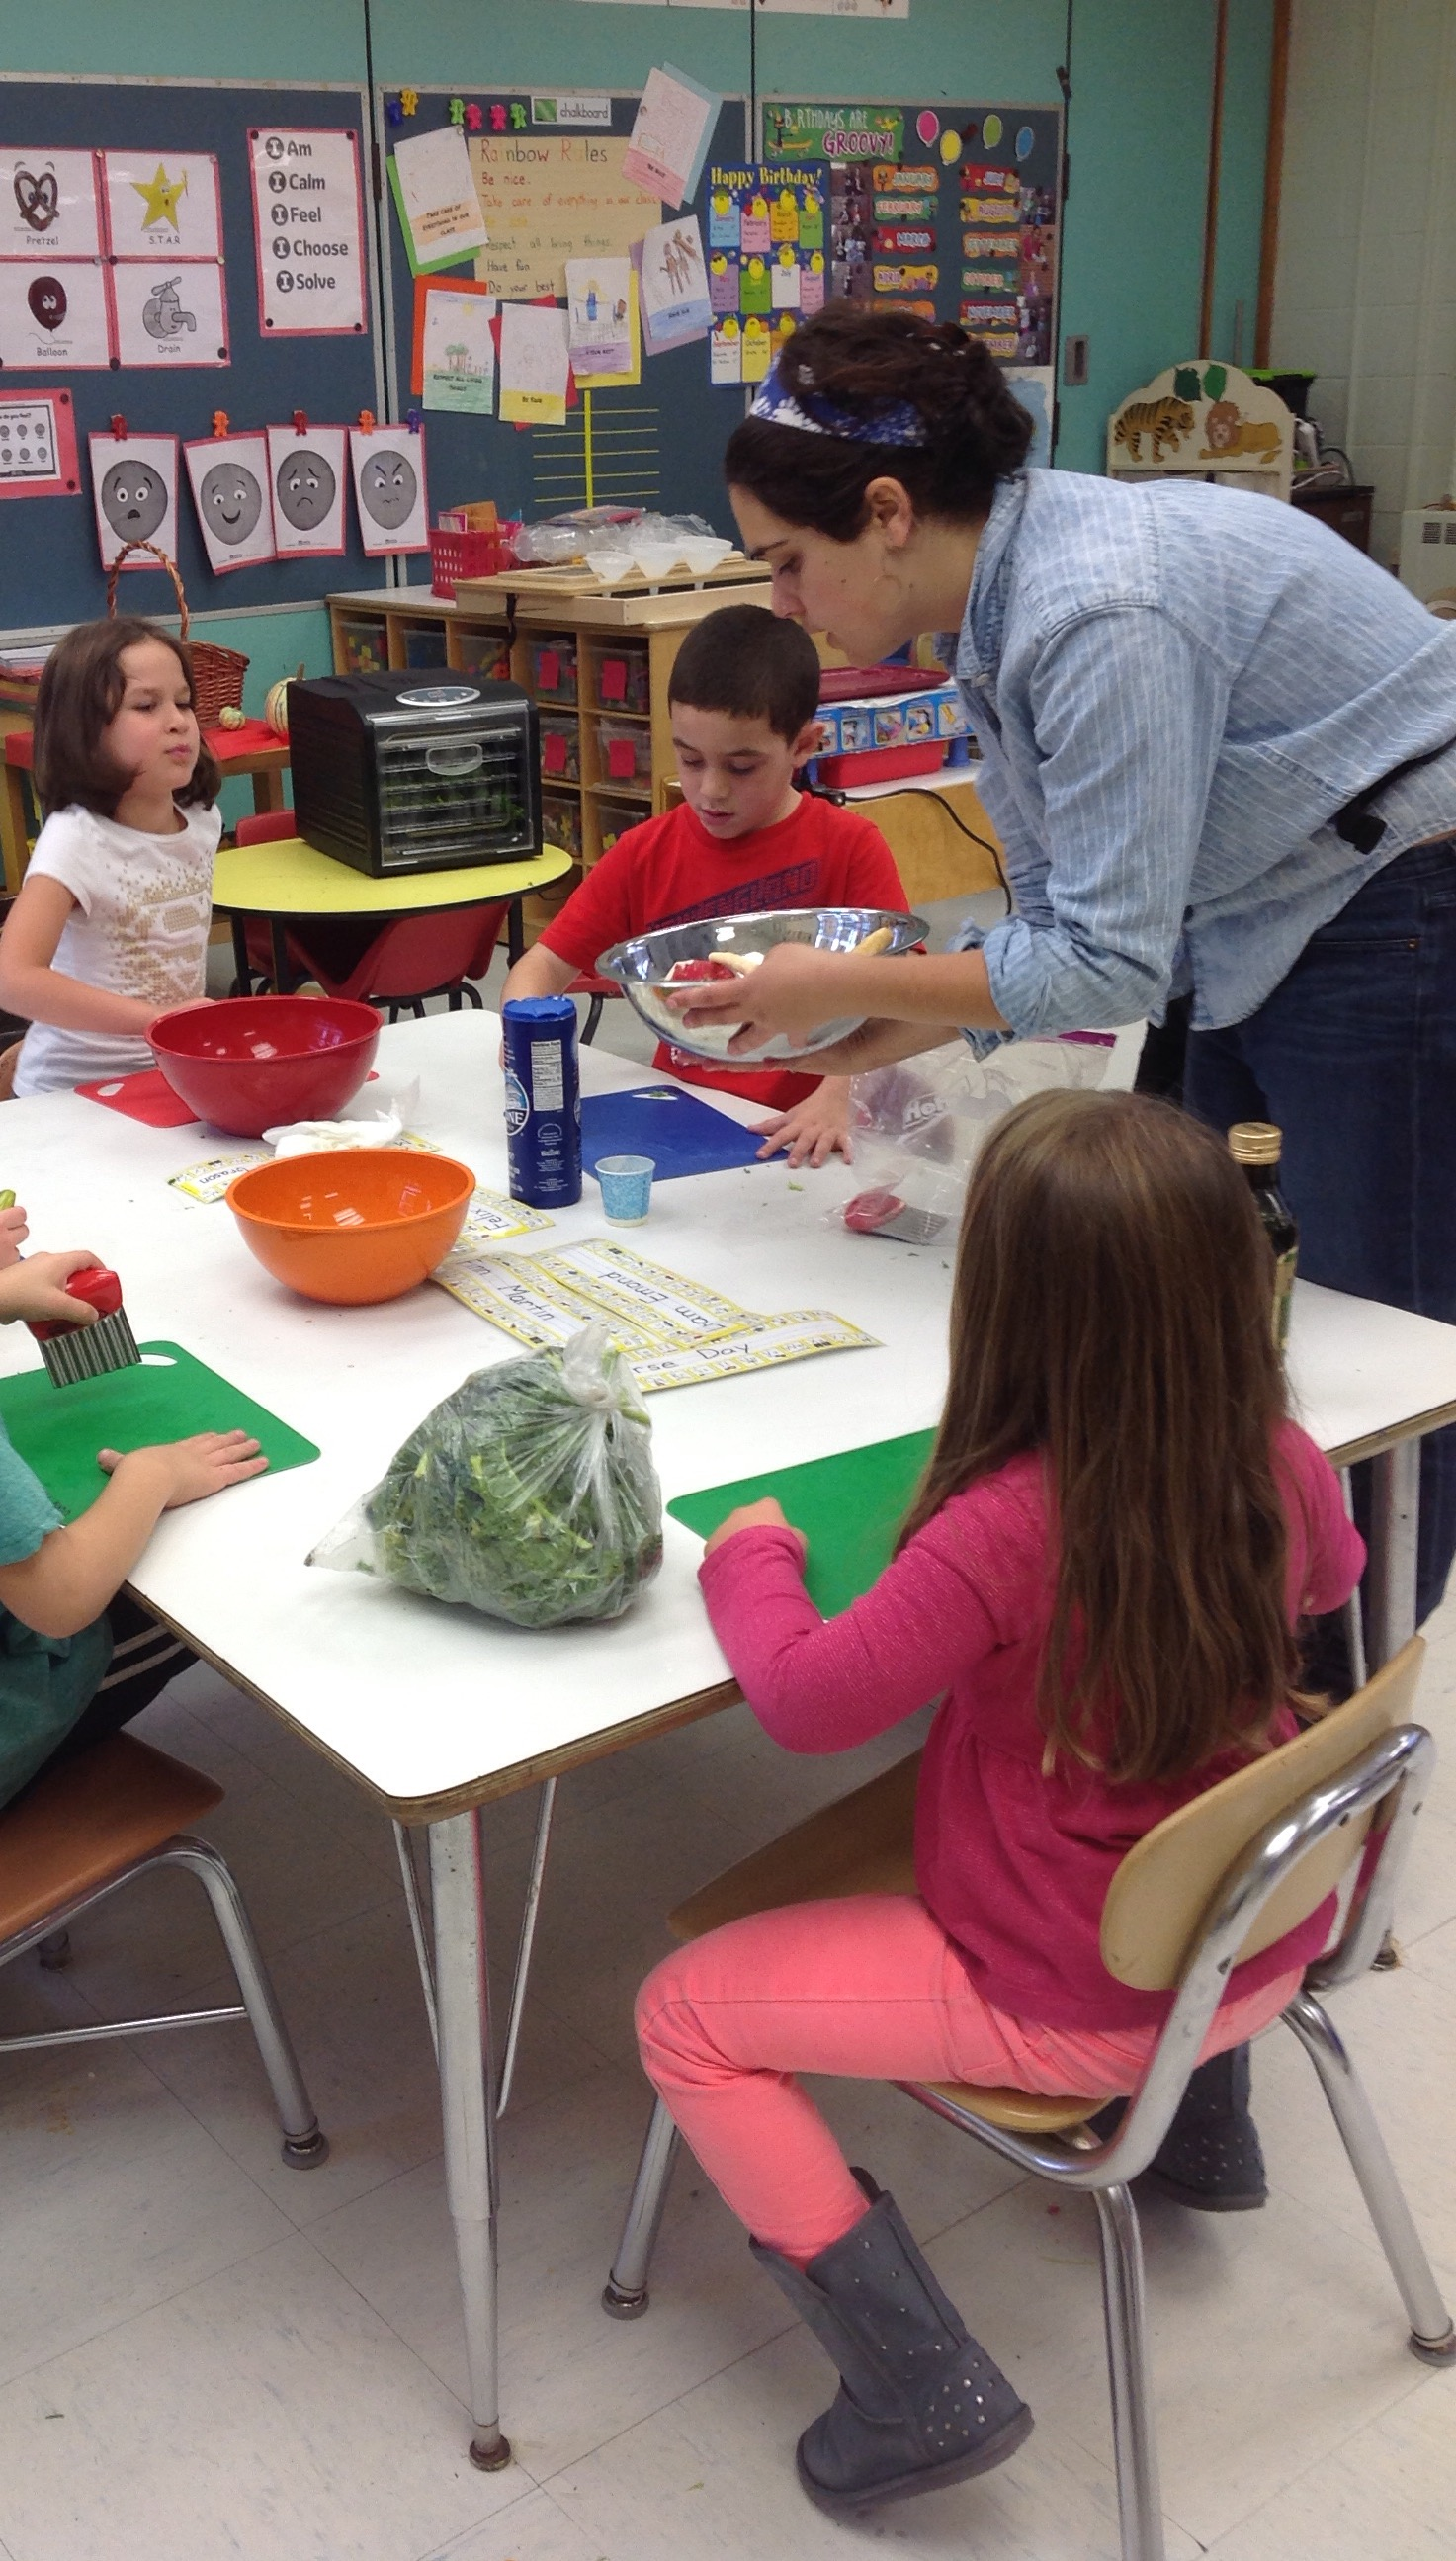 Caroline Teaches Students How To Make Kale Chips